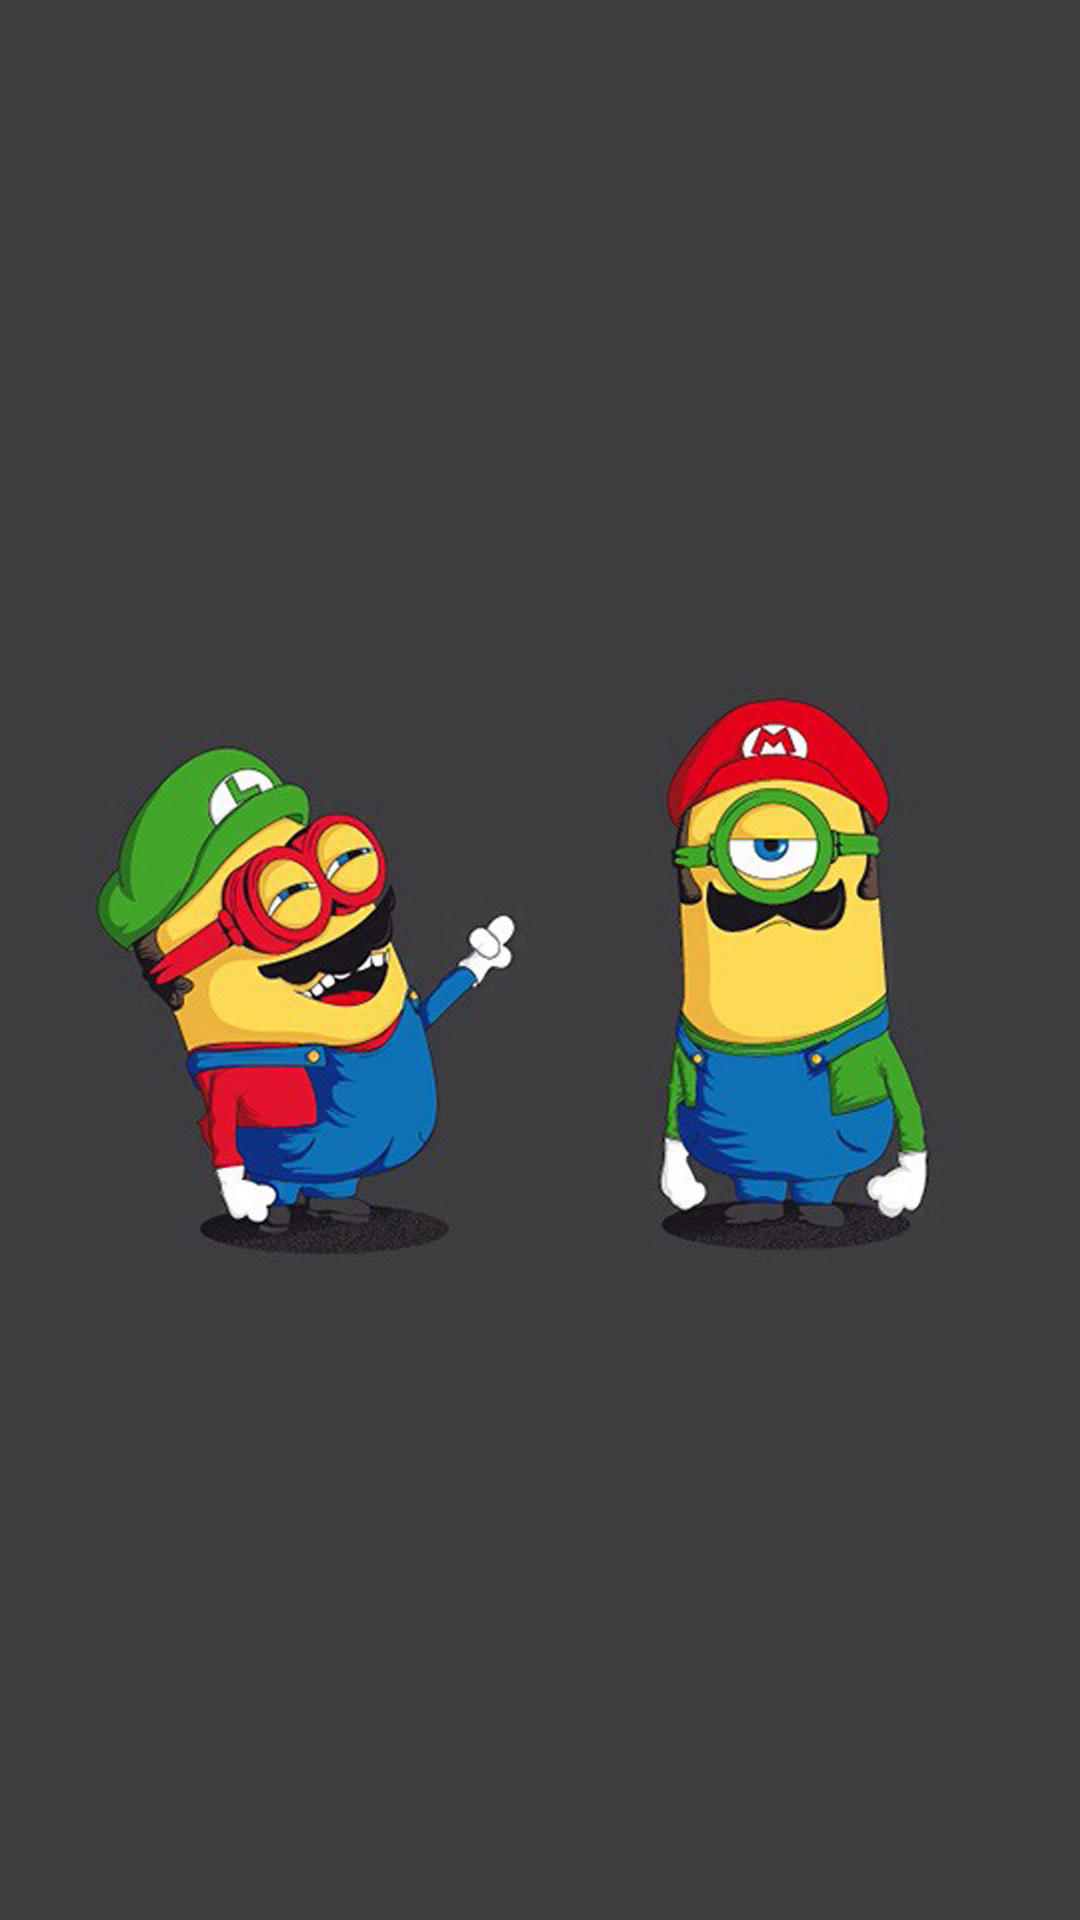 1080x1920 Funny Mario And Luigi Minions HD Wallpaper iPhone 6 plus